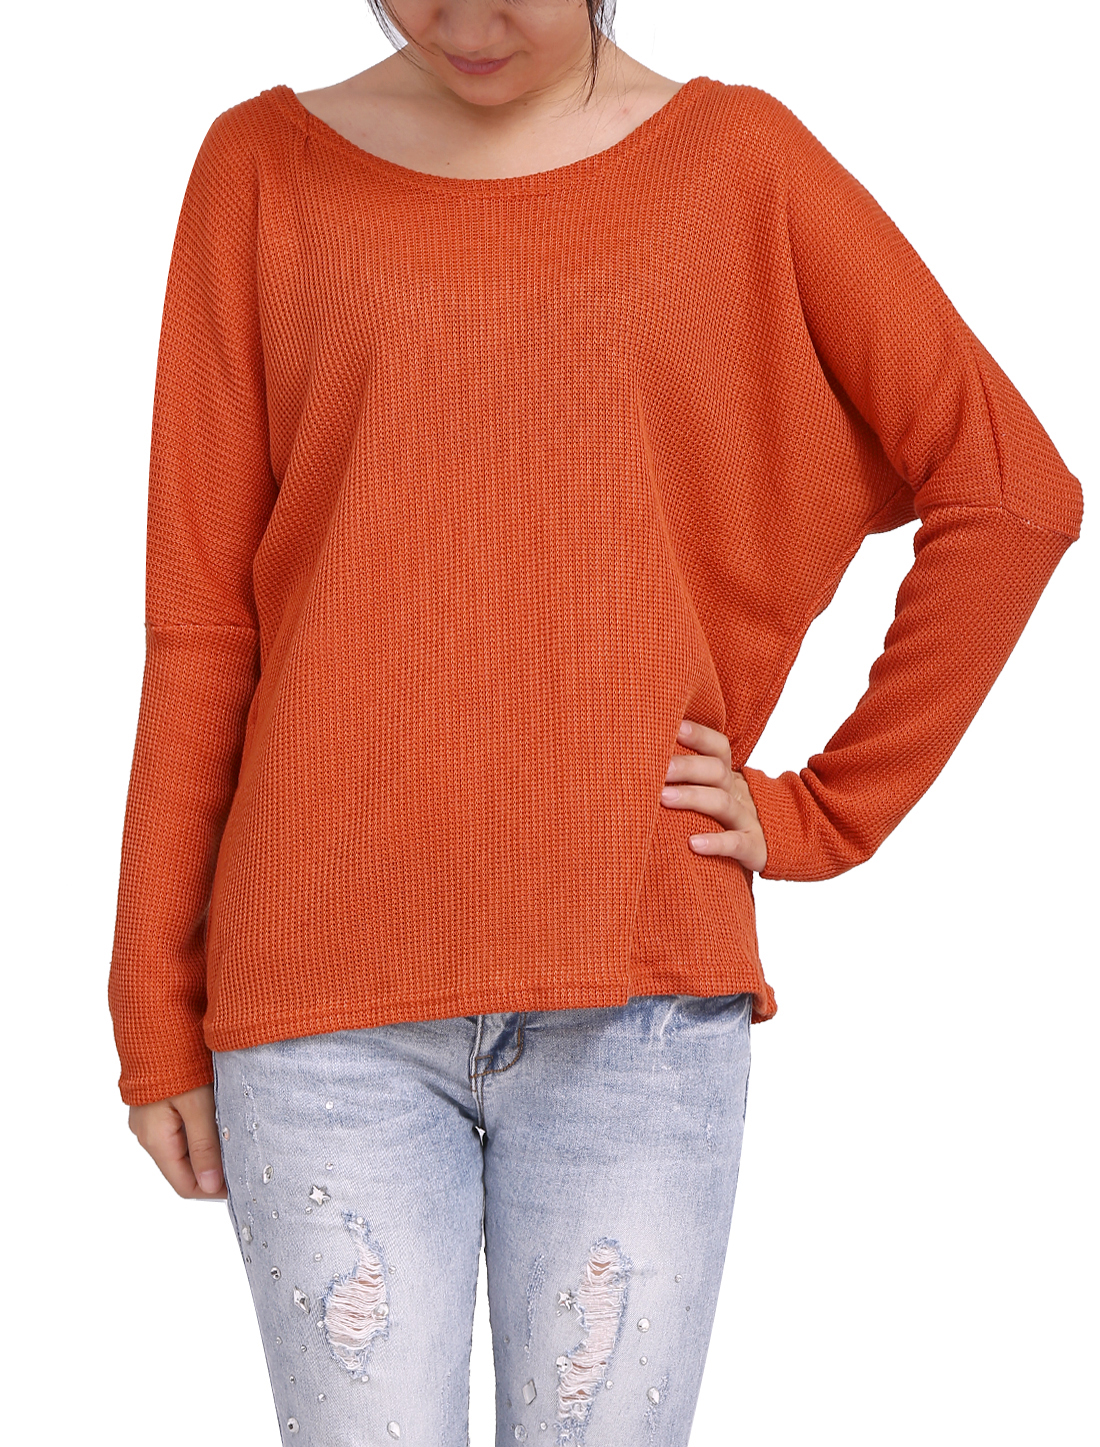 Ladies Dark Orange Long Sleeves Scoop Neck Loose Pullover Sweater XS